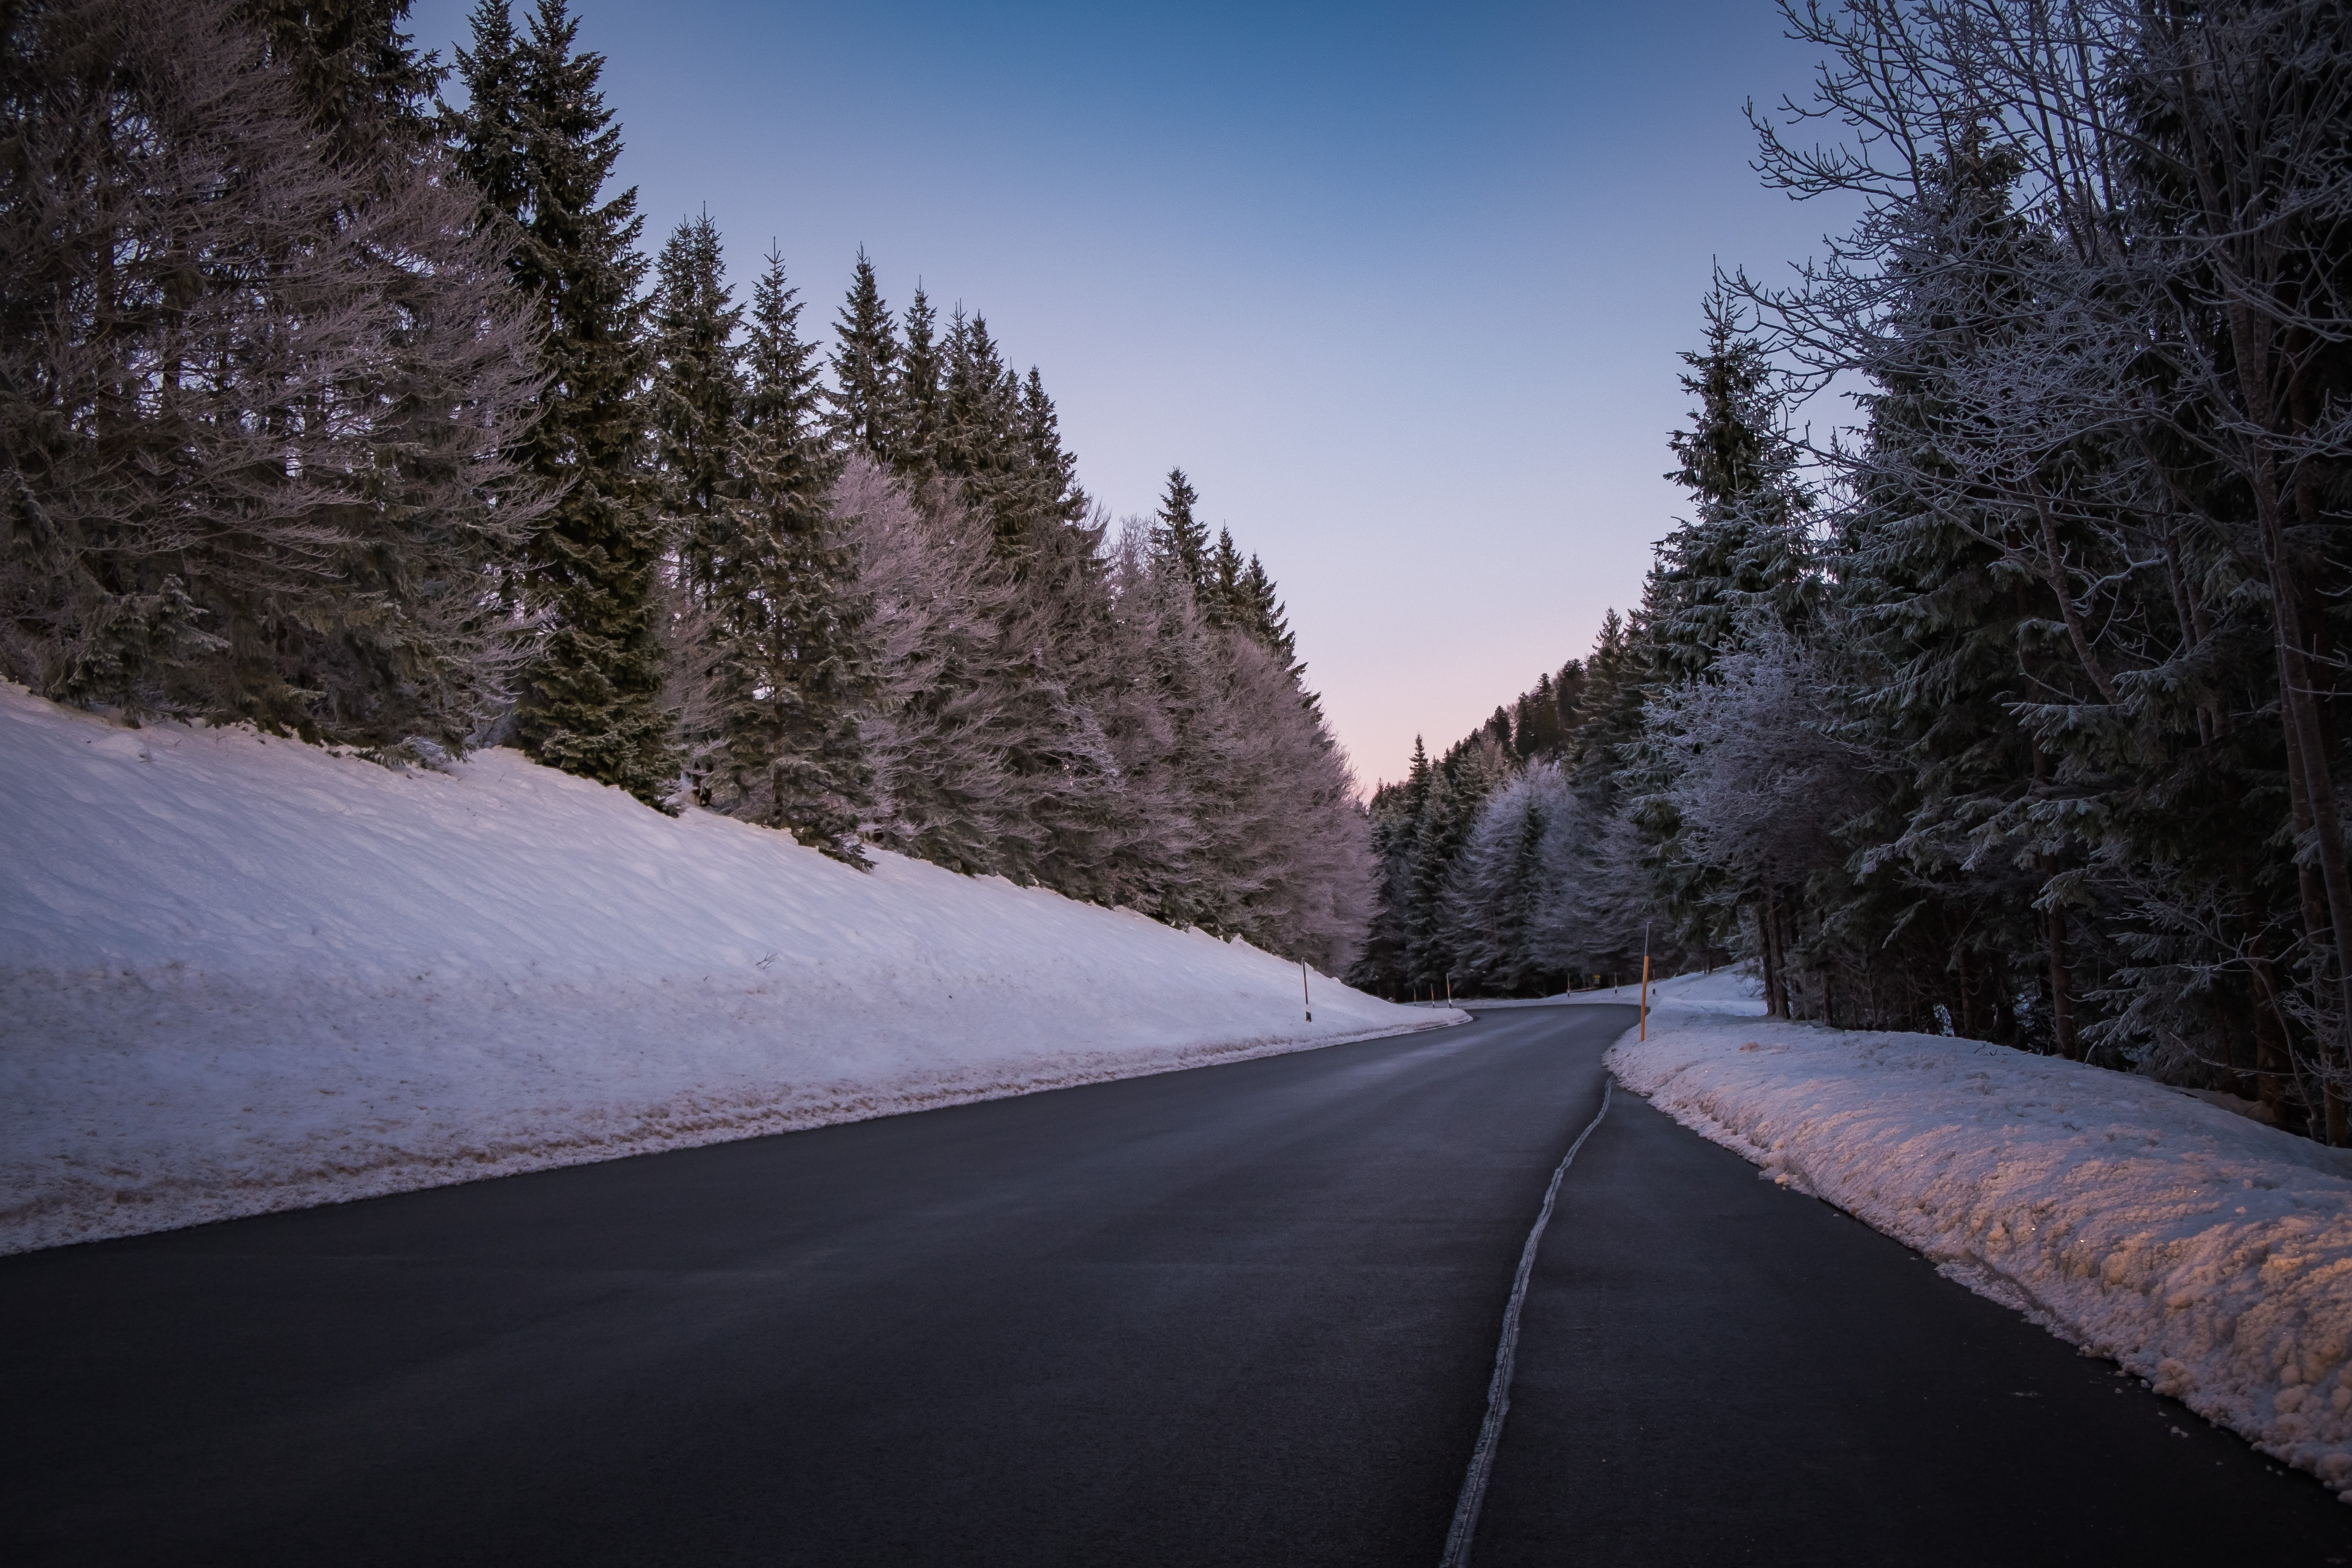 highway between snow-covered pine trees during daytime